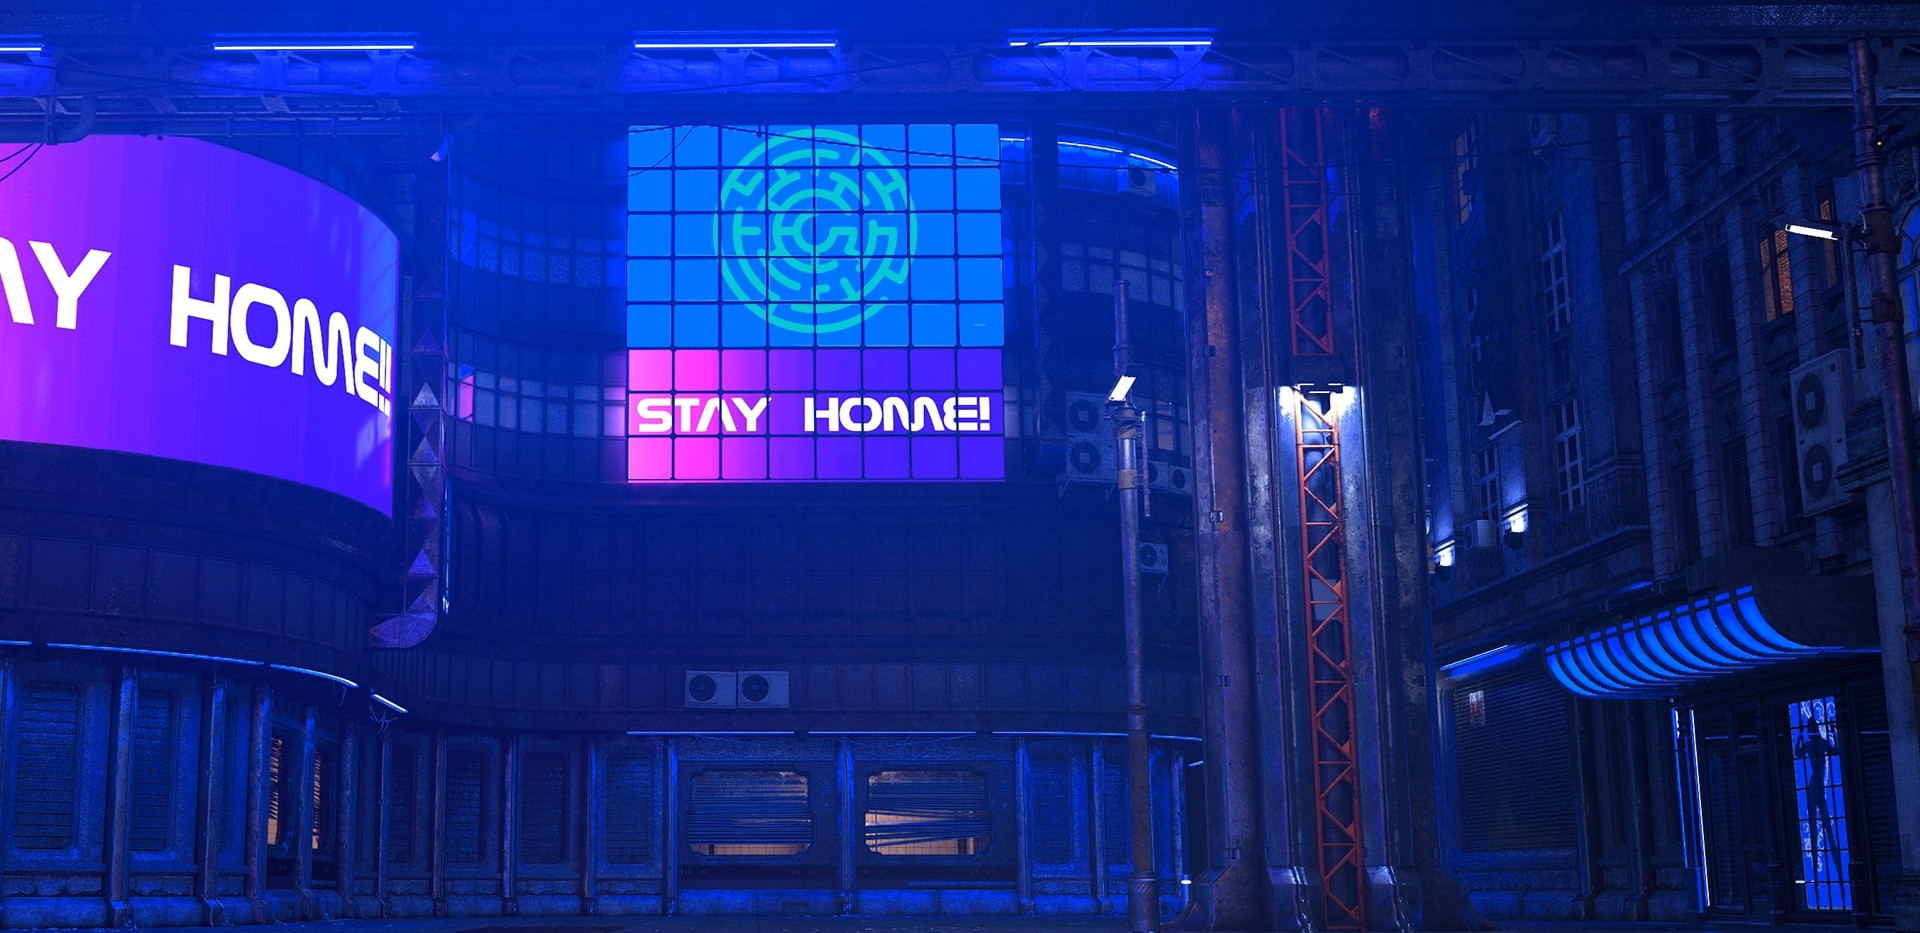 Stay Home | Cyberpunk Online Escape Game